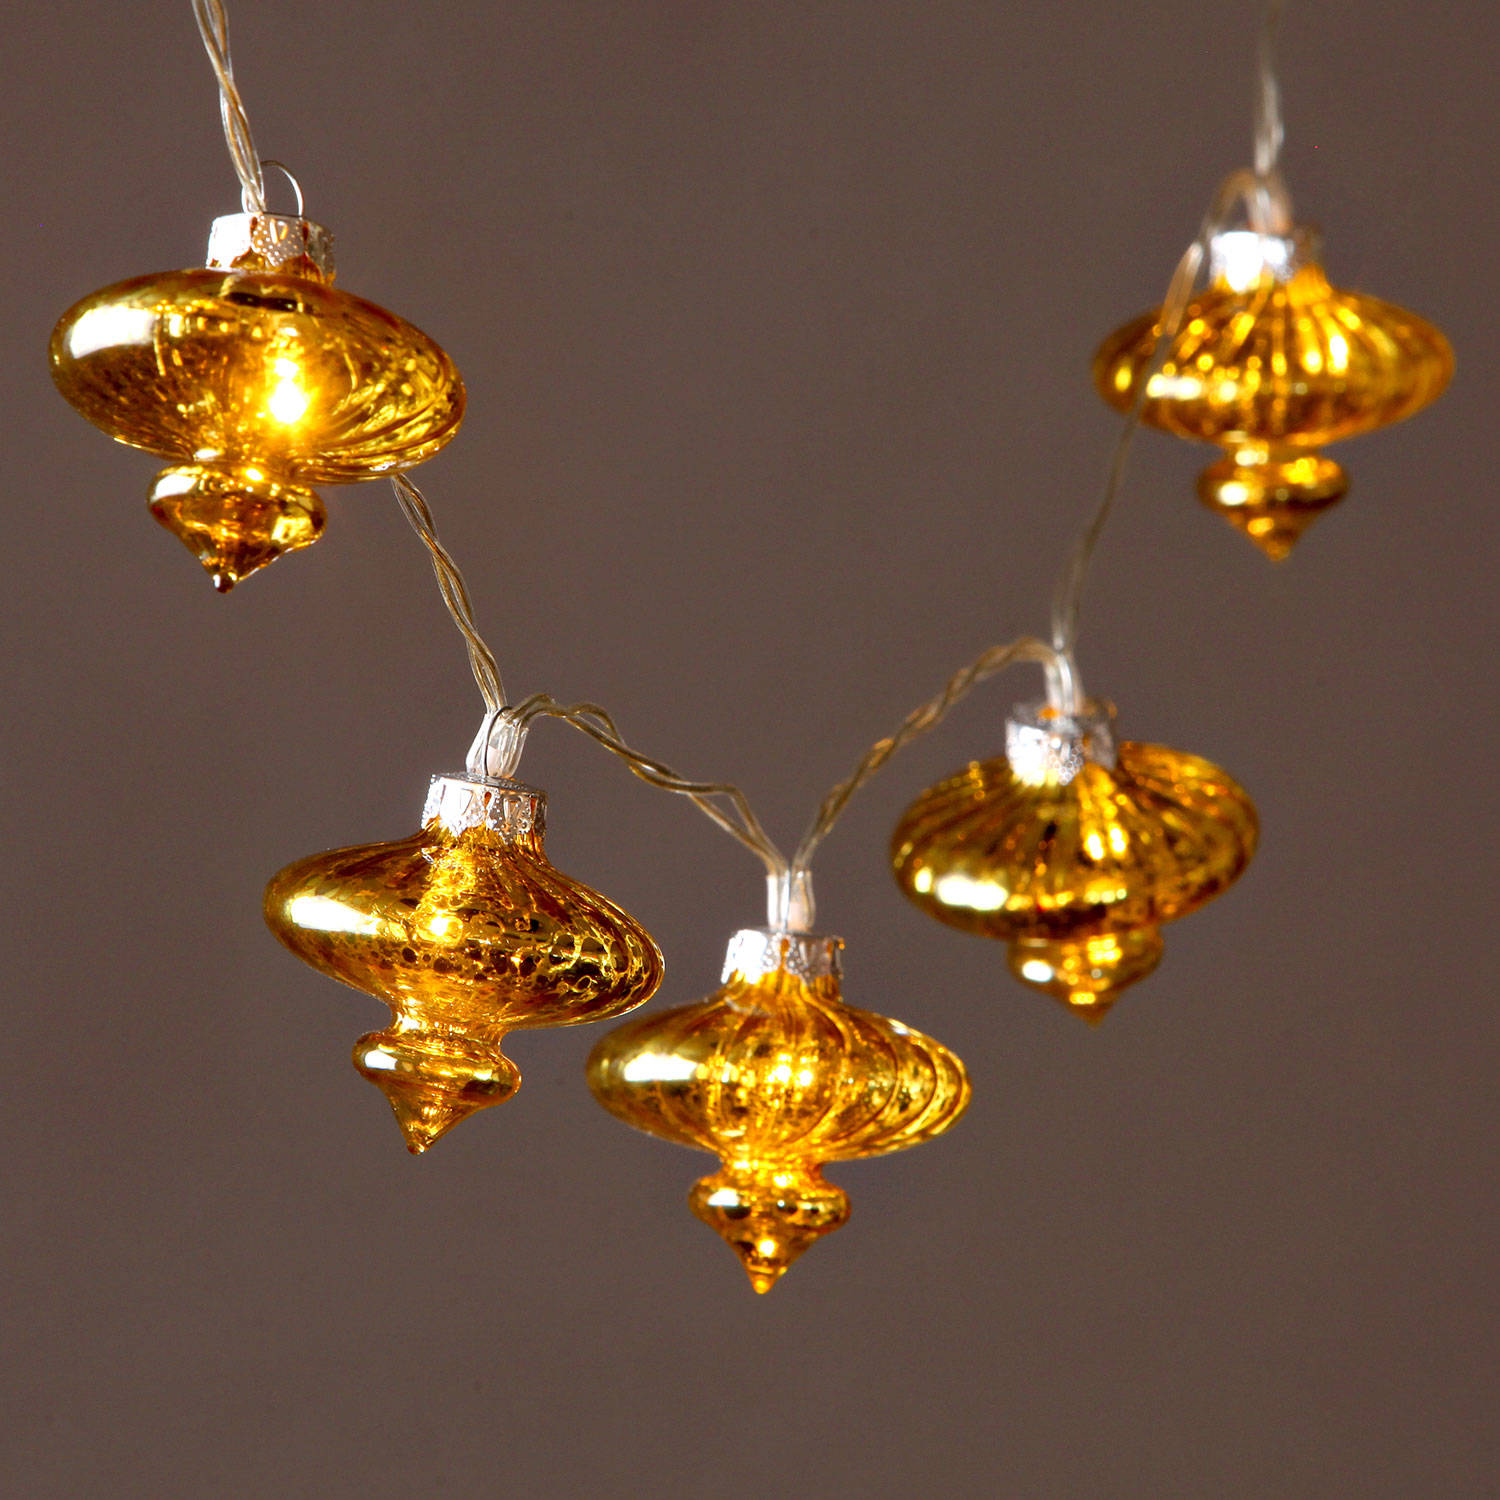 String Of Lantern Lights : Lights.com Lit Decor String Lights Decorative Vintage Gold Glass Lantern Battery String ...